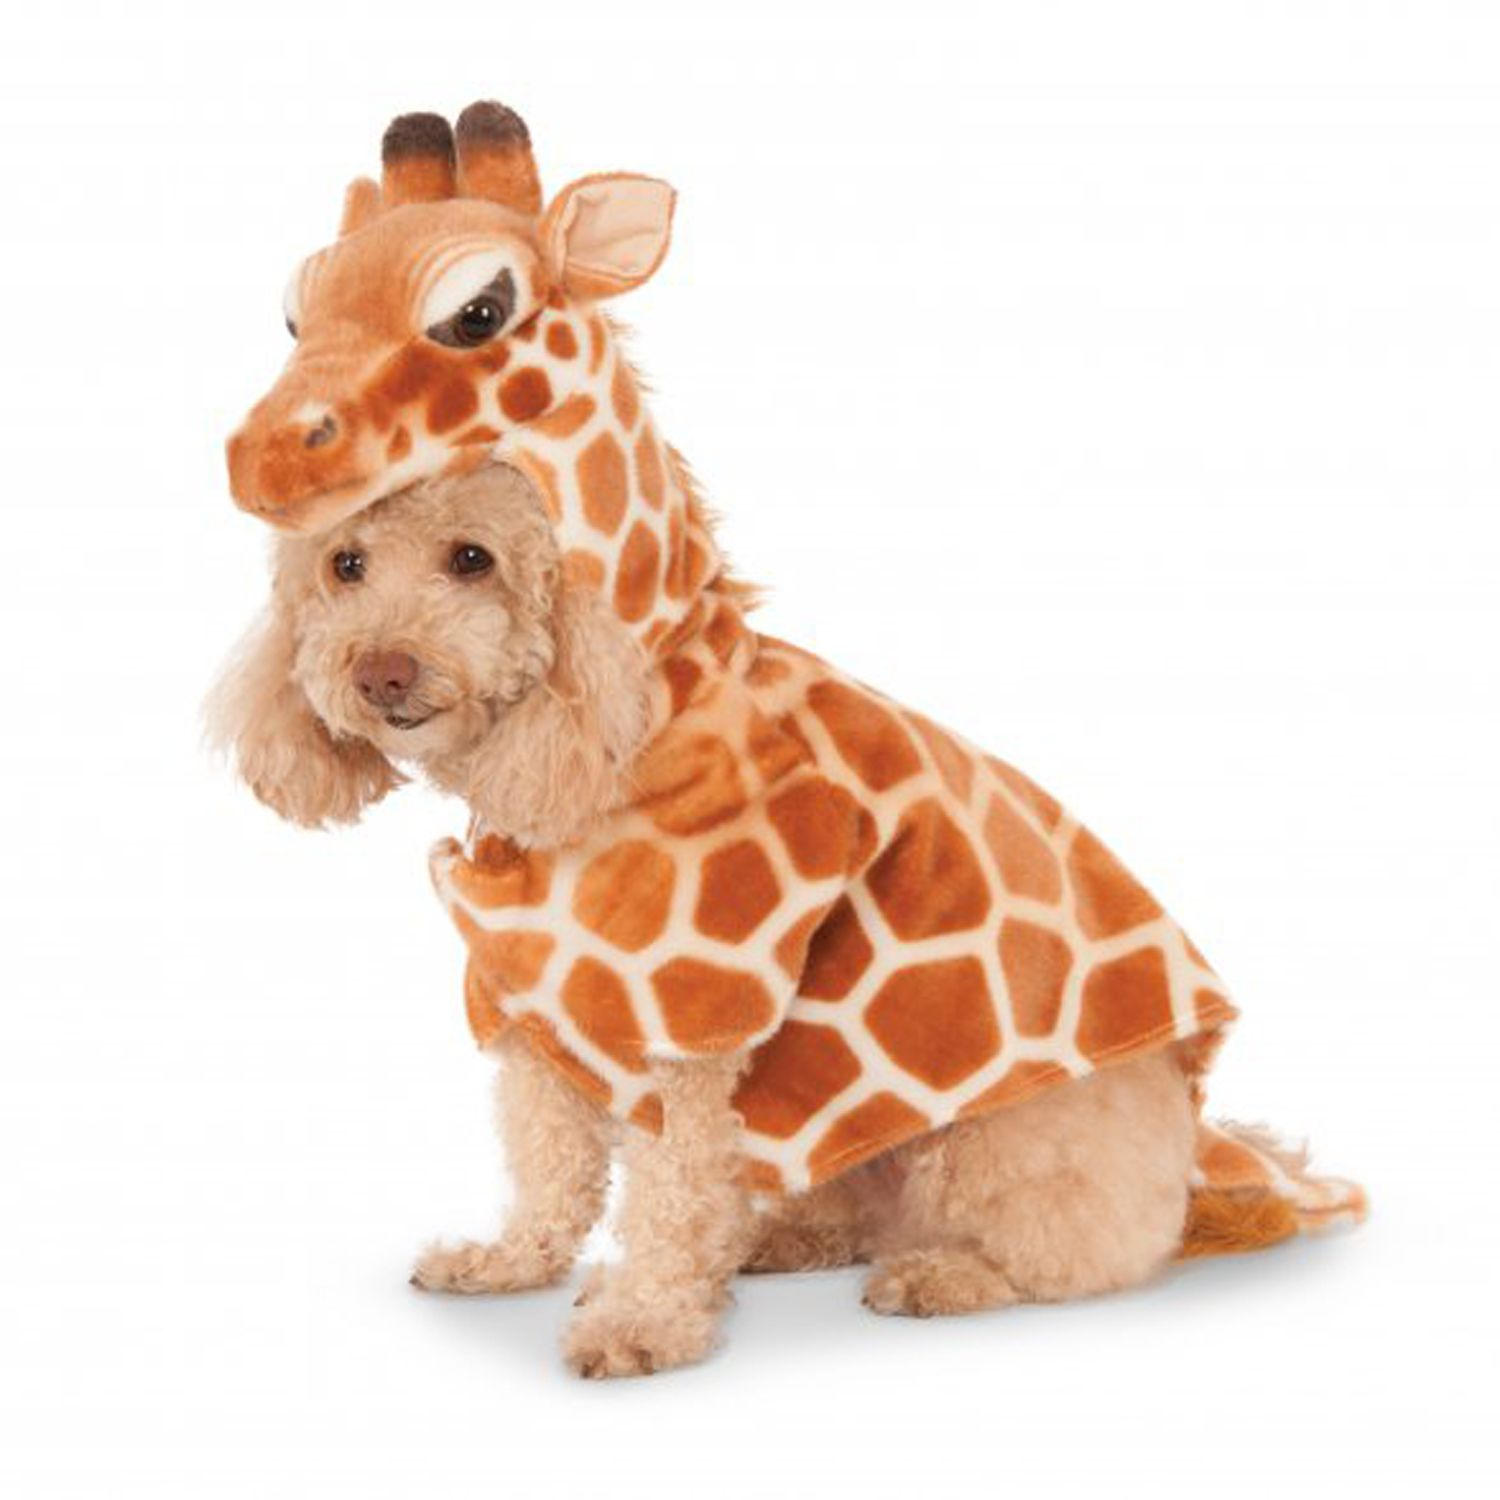 Giraffe Dog Hoodie Costume Pet Halloween Costumes Pet Costumes